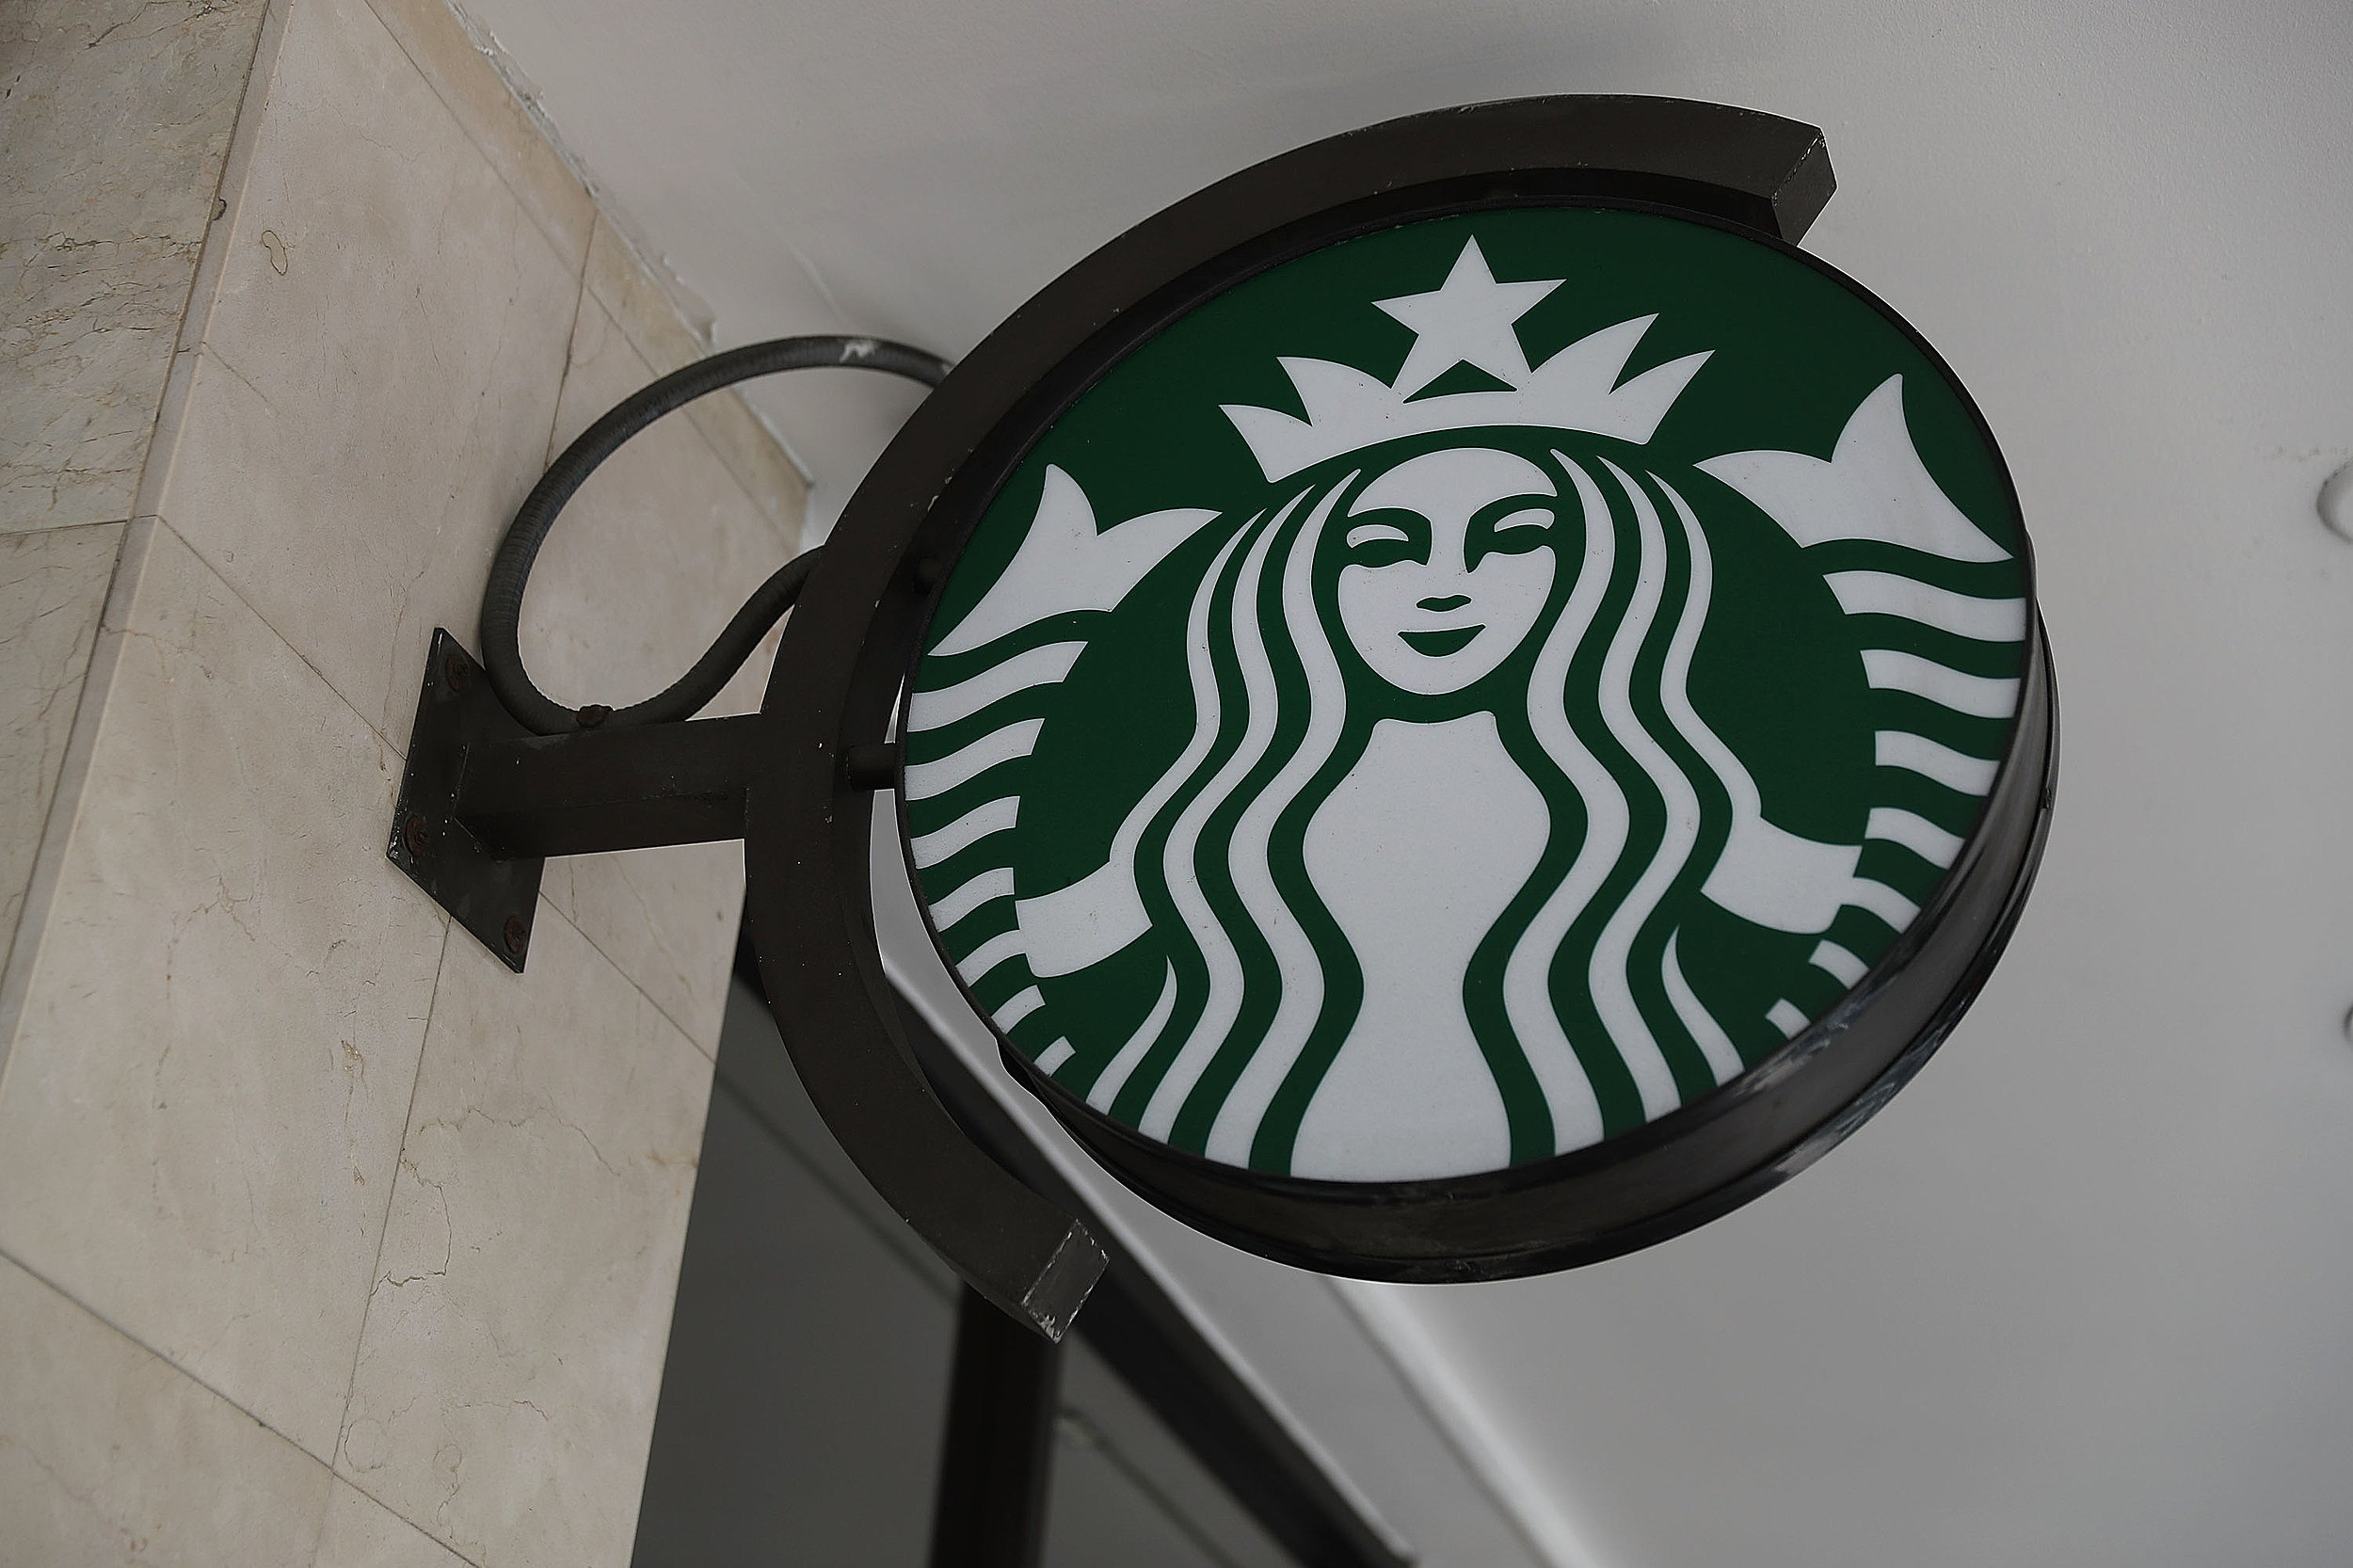 Starbucks To Close All 379 Stores Of Its Struggling Teavana Chain